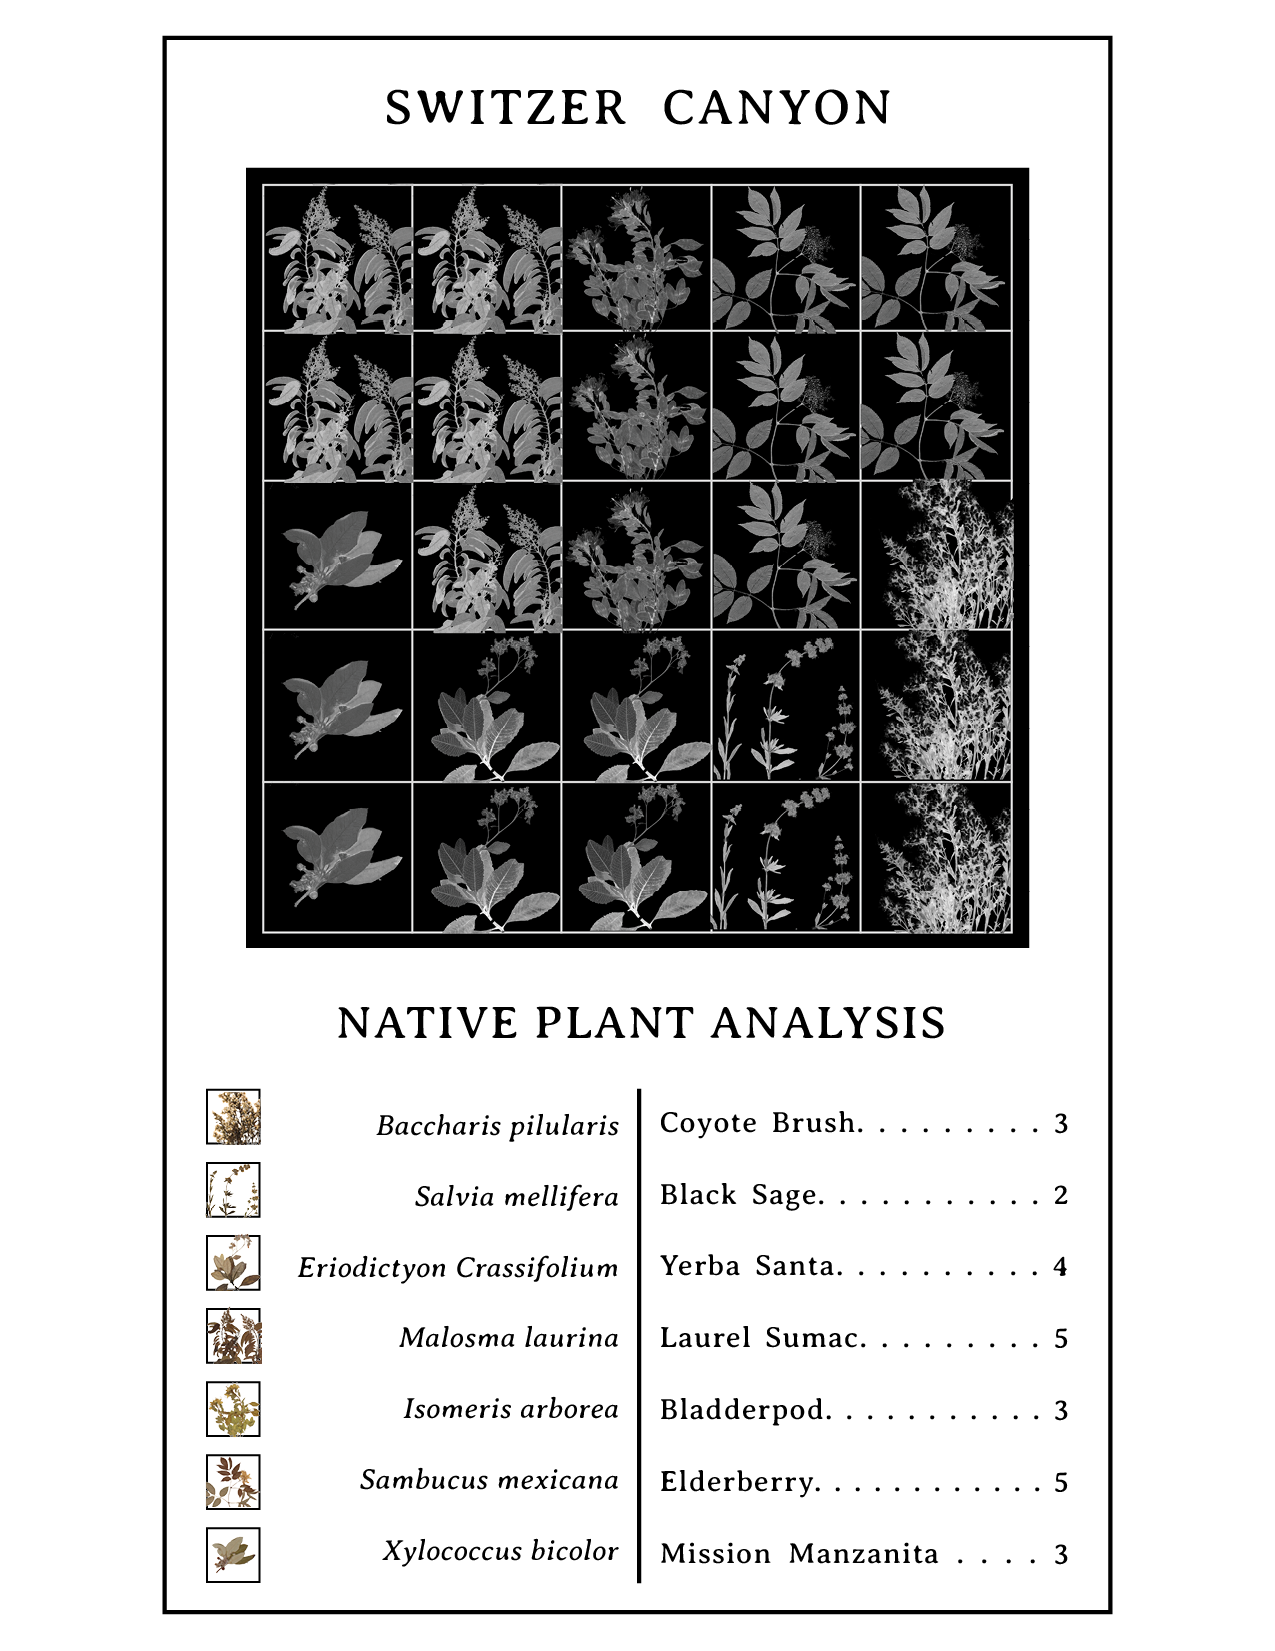 Revised digital images for better cyanotype exposure